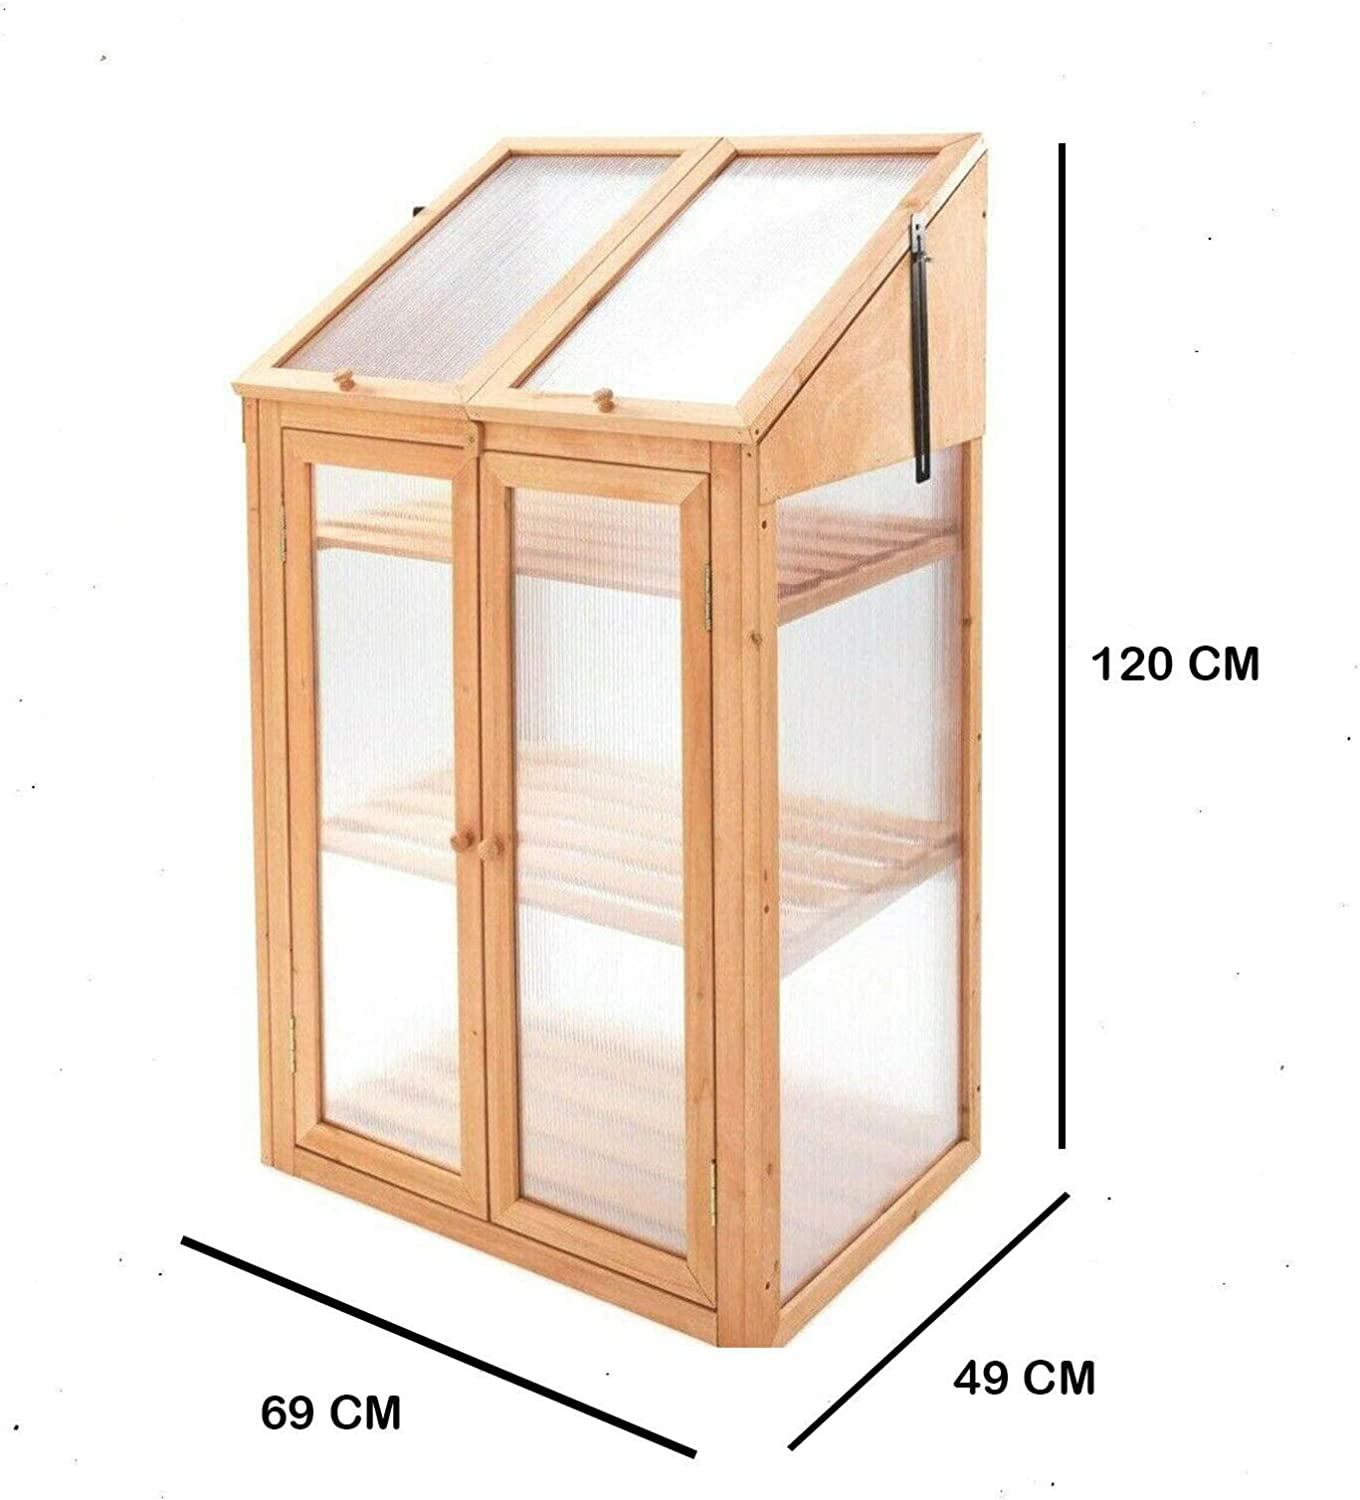 HMWD Double Door Mini 3-Tier Wooden Coldframe Greenhouse With Semi Transparent Poly-carbonate Glazing Garden Greenhouse Outdoor Flower Vegetable Planting Storage Shelves H120xW69xD49 cm